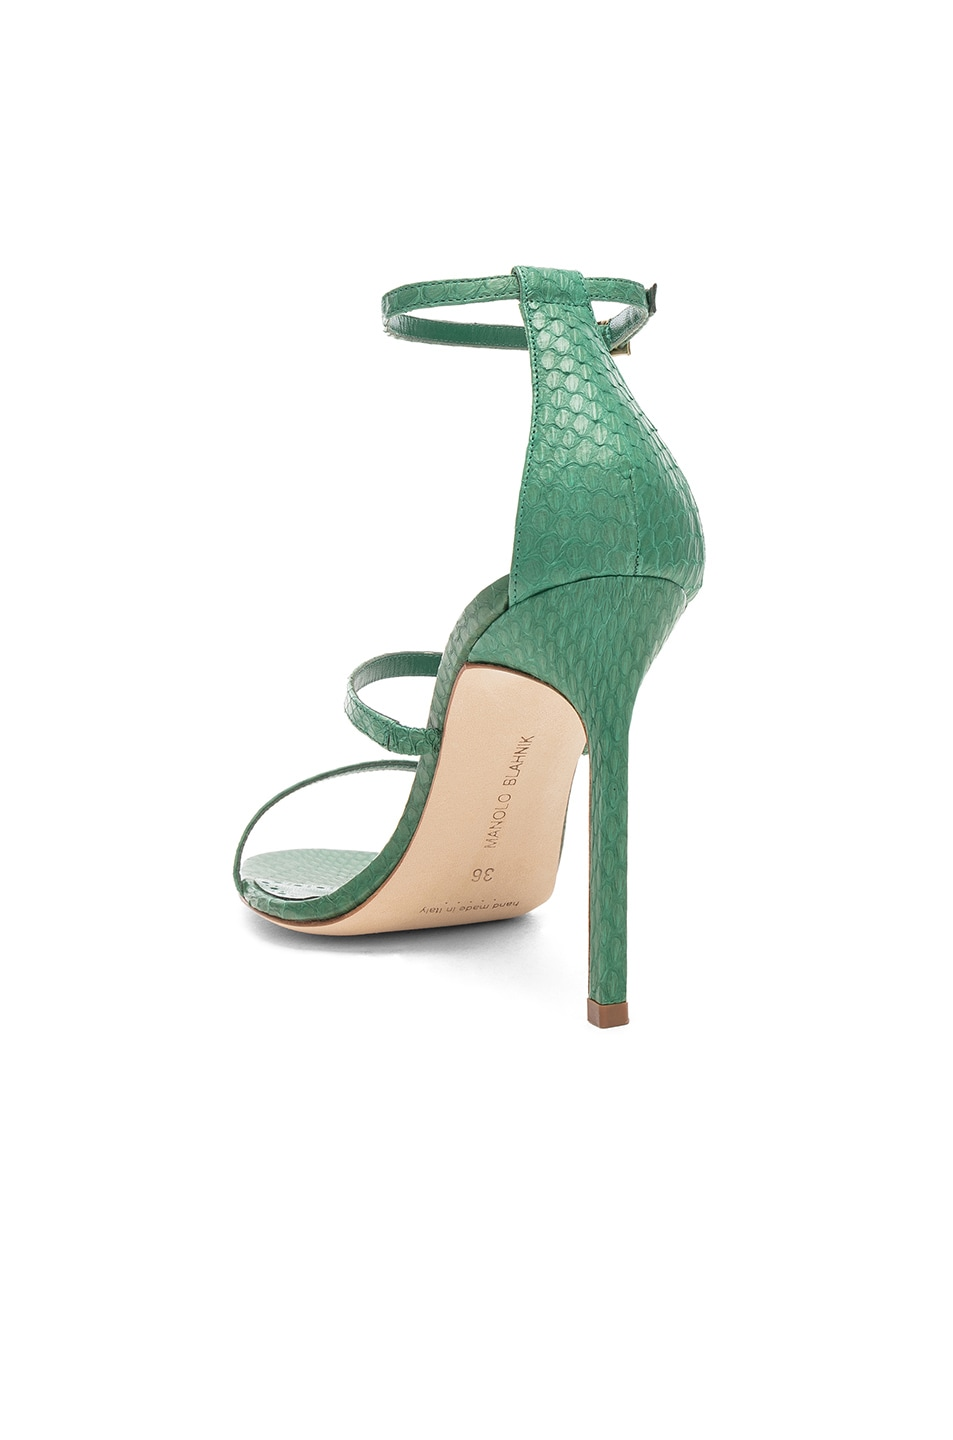 Image 3 of Manolo Blahnik Piona Matte Snake 105 Heel in Green